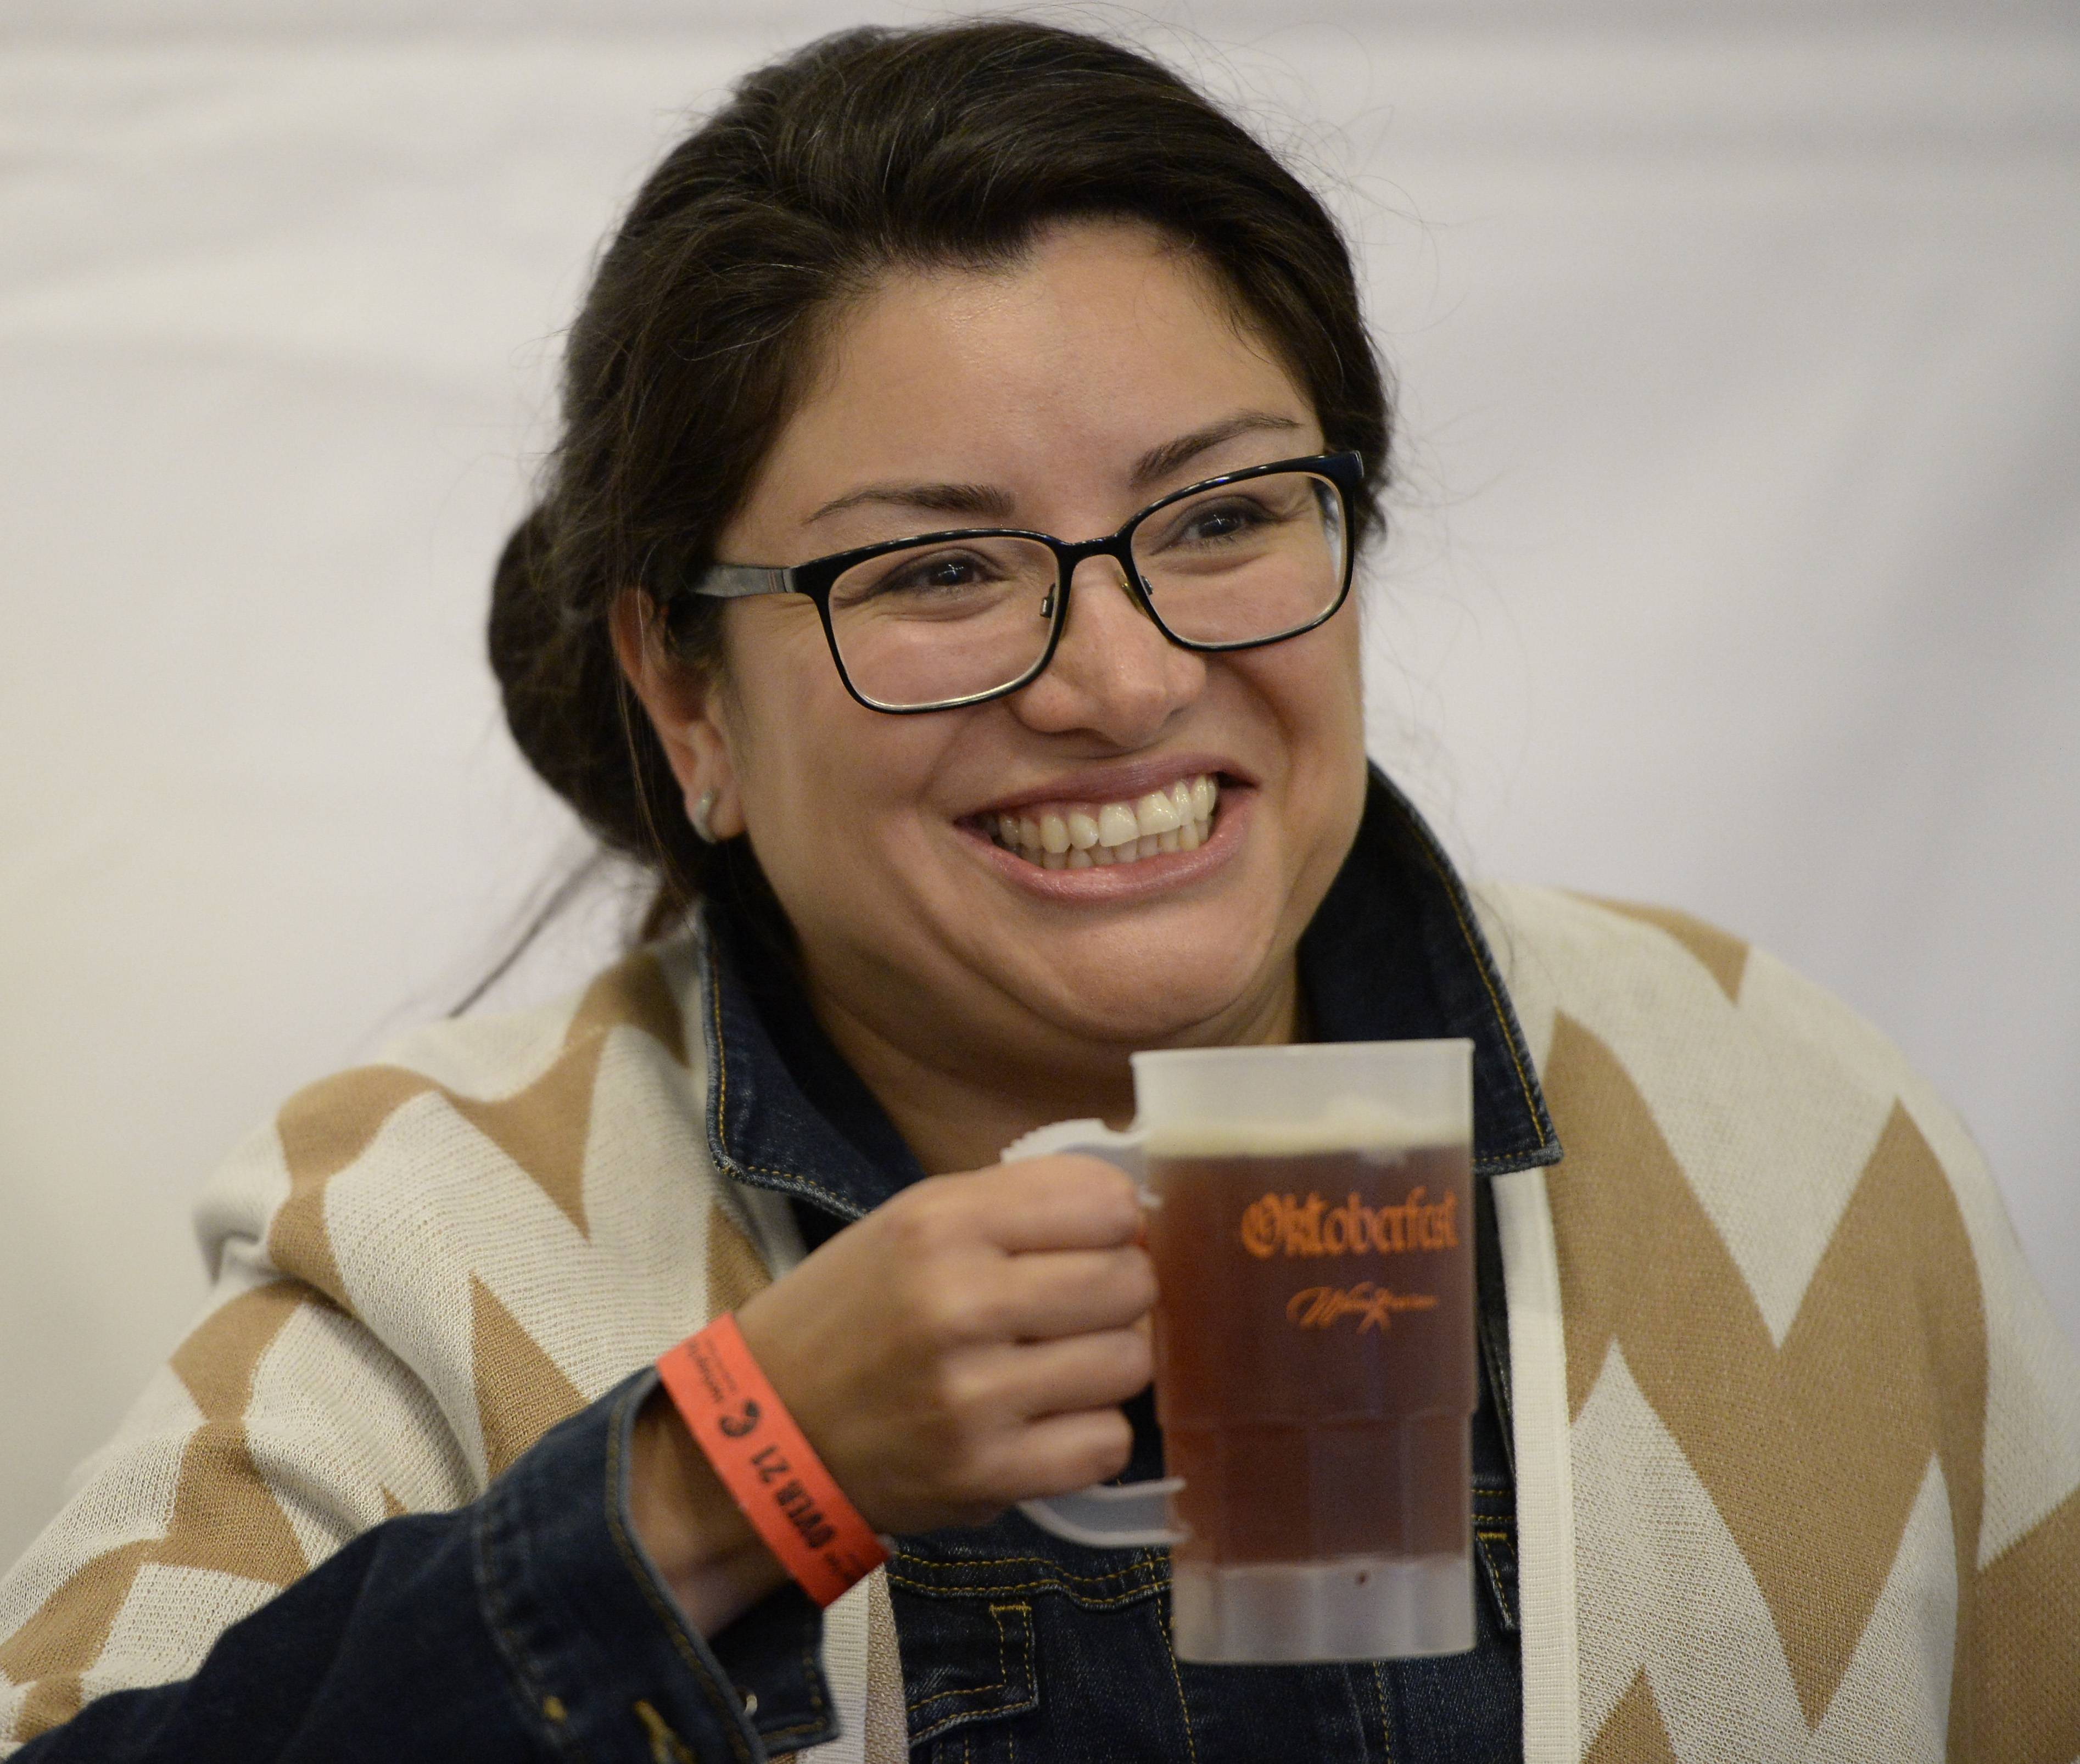 Evangelia Moreno of Wheeling enjoys the Oktoberfest brew at Heritage Park in Wheeling as she listens to the Modern Day Romeos perform on Friday evening.